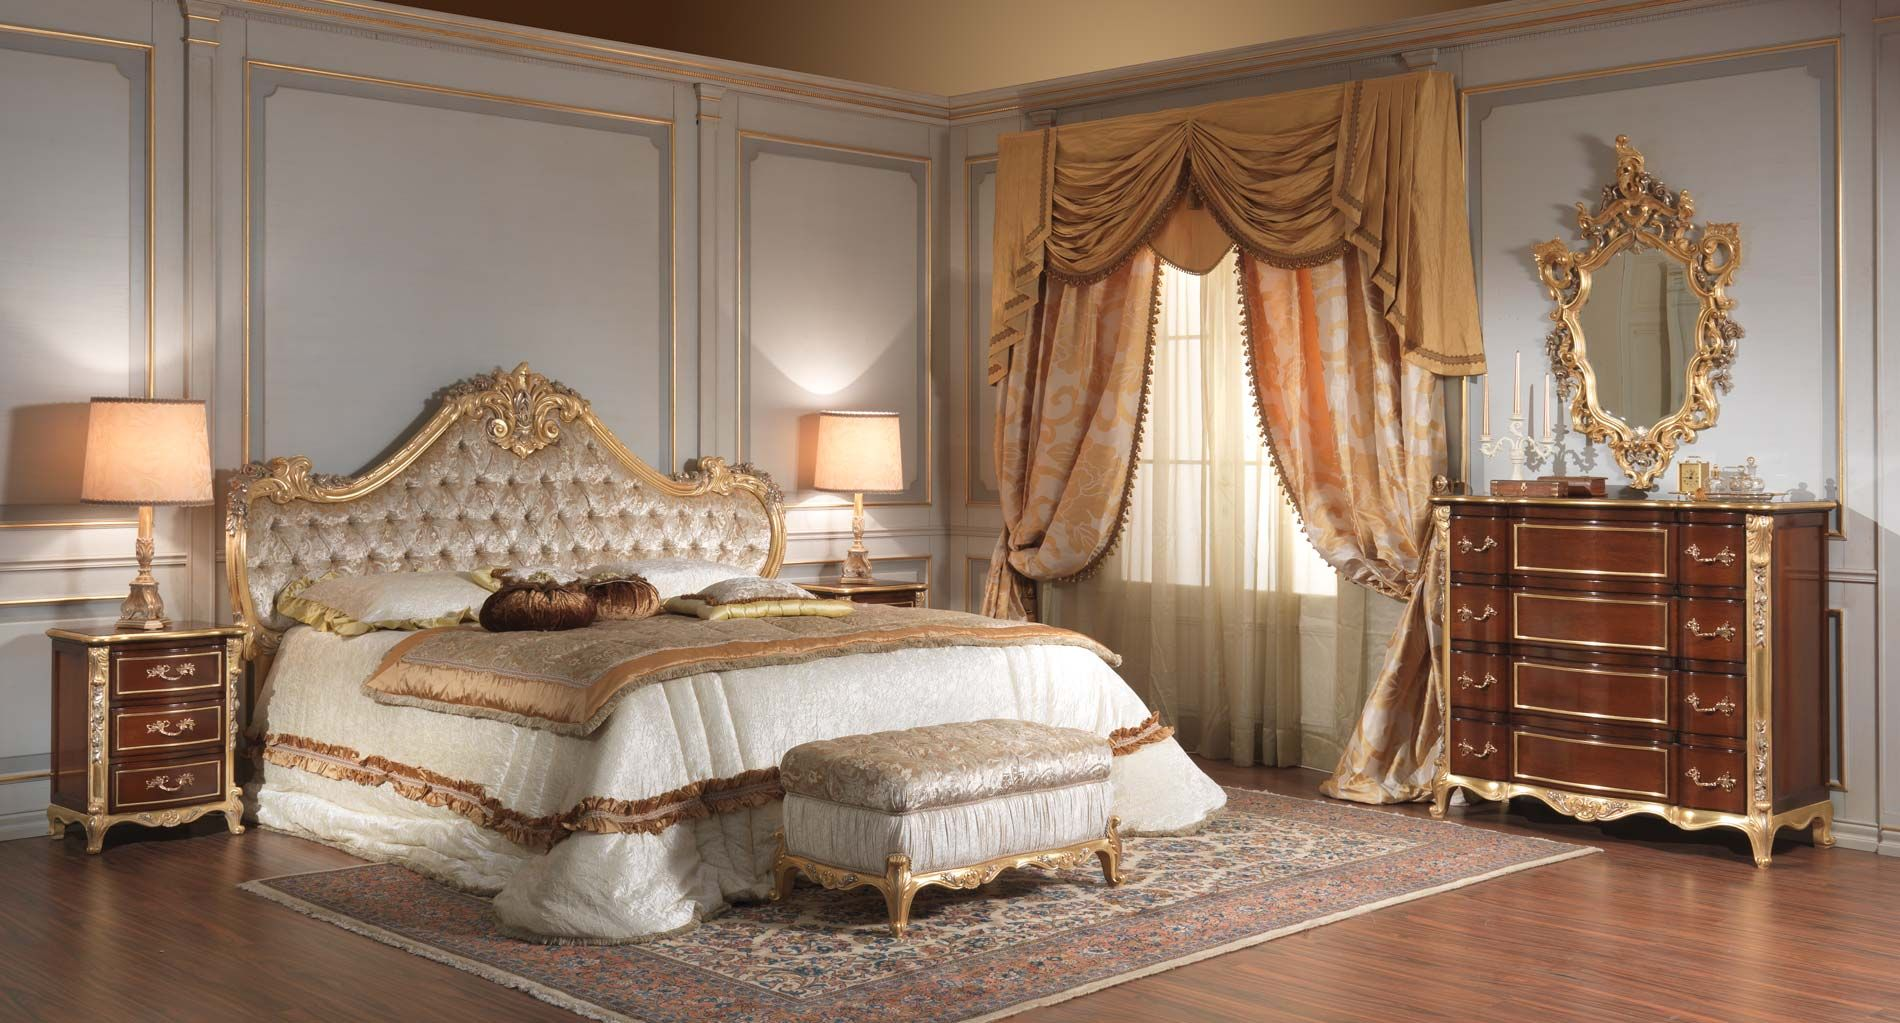 Italian bedroom decor - Camera Da Letto Stile Classico Cerca Con Google Italian Bedroom